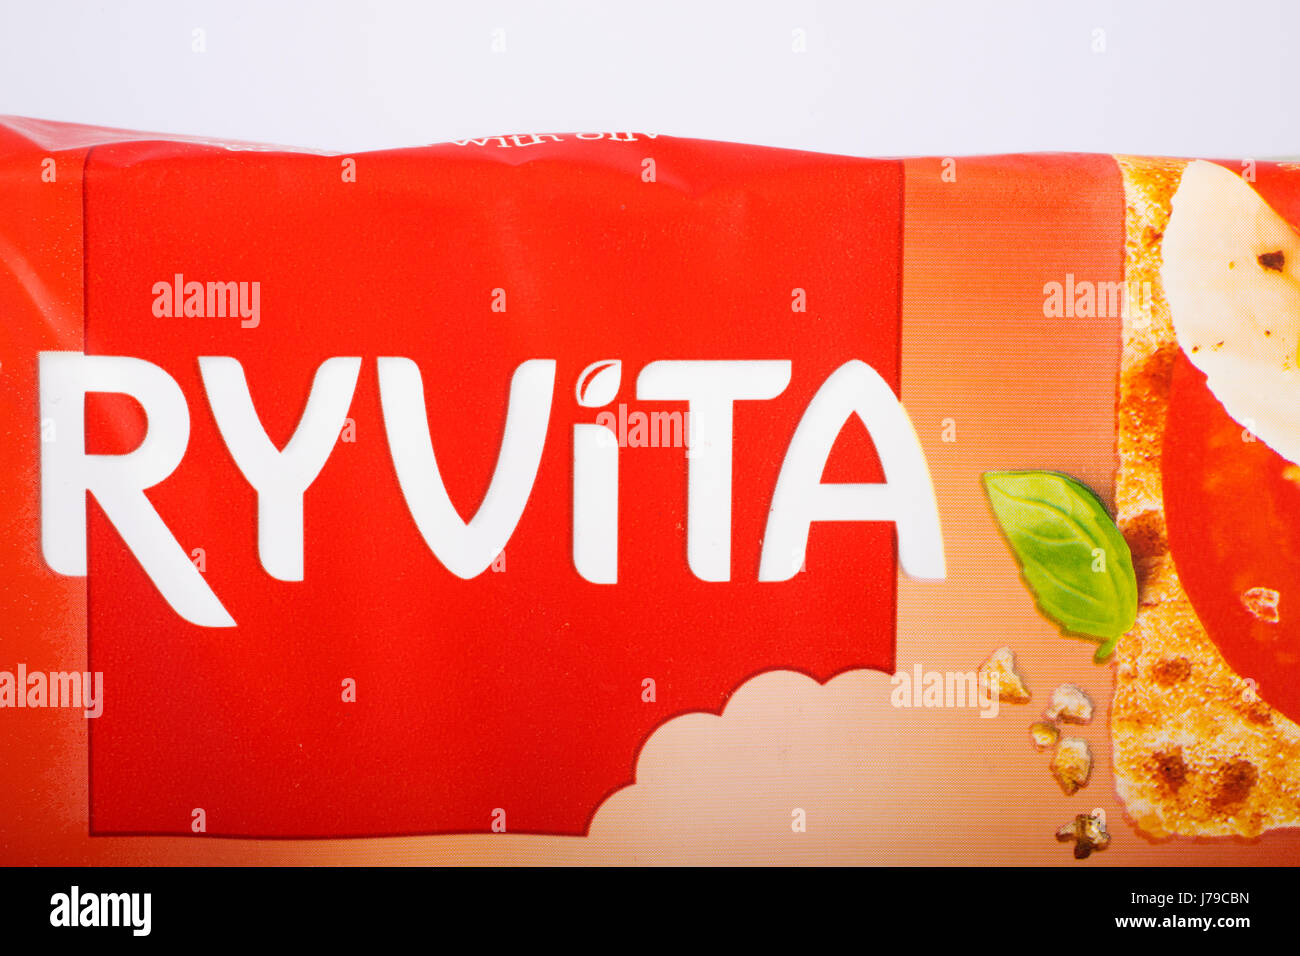 LONDON, UK - MAY 23RD 2017: The Ryvita logo on one of its crispbread products, on 23rd May 2017. The company is - Stock Image